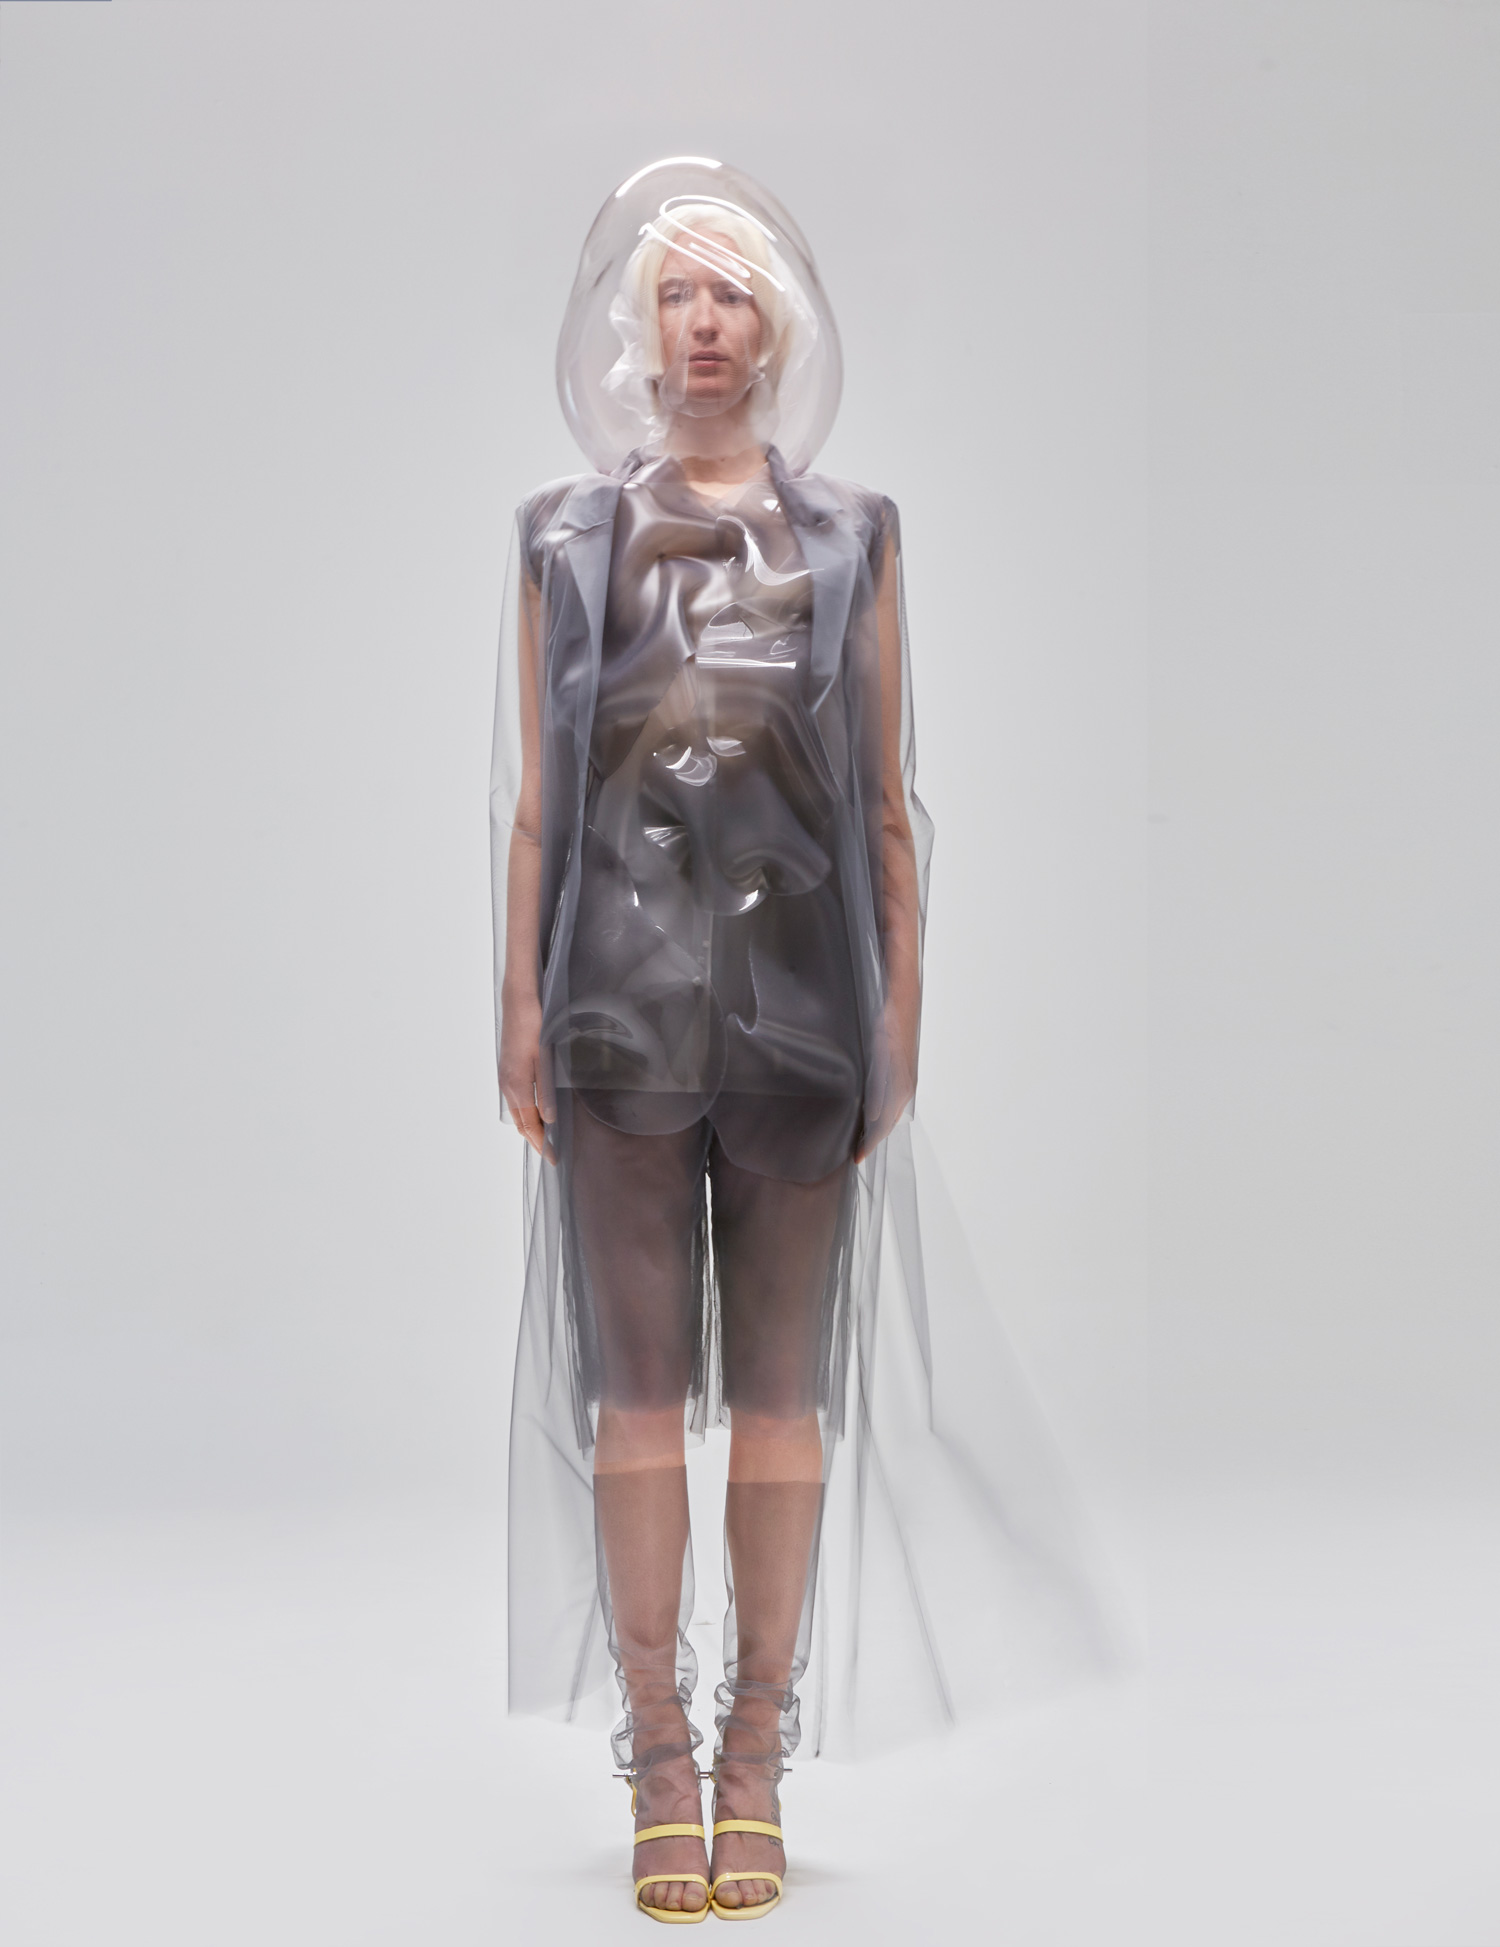 Robotic Clothing Project by Ying Gao | Yellowtrace